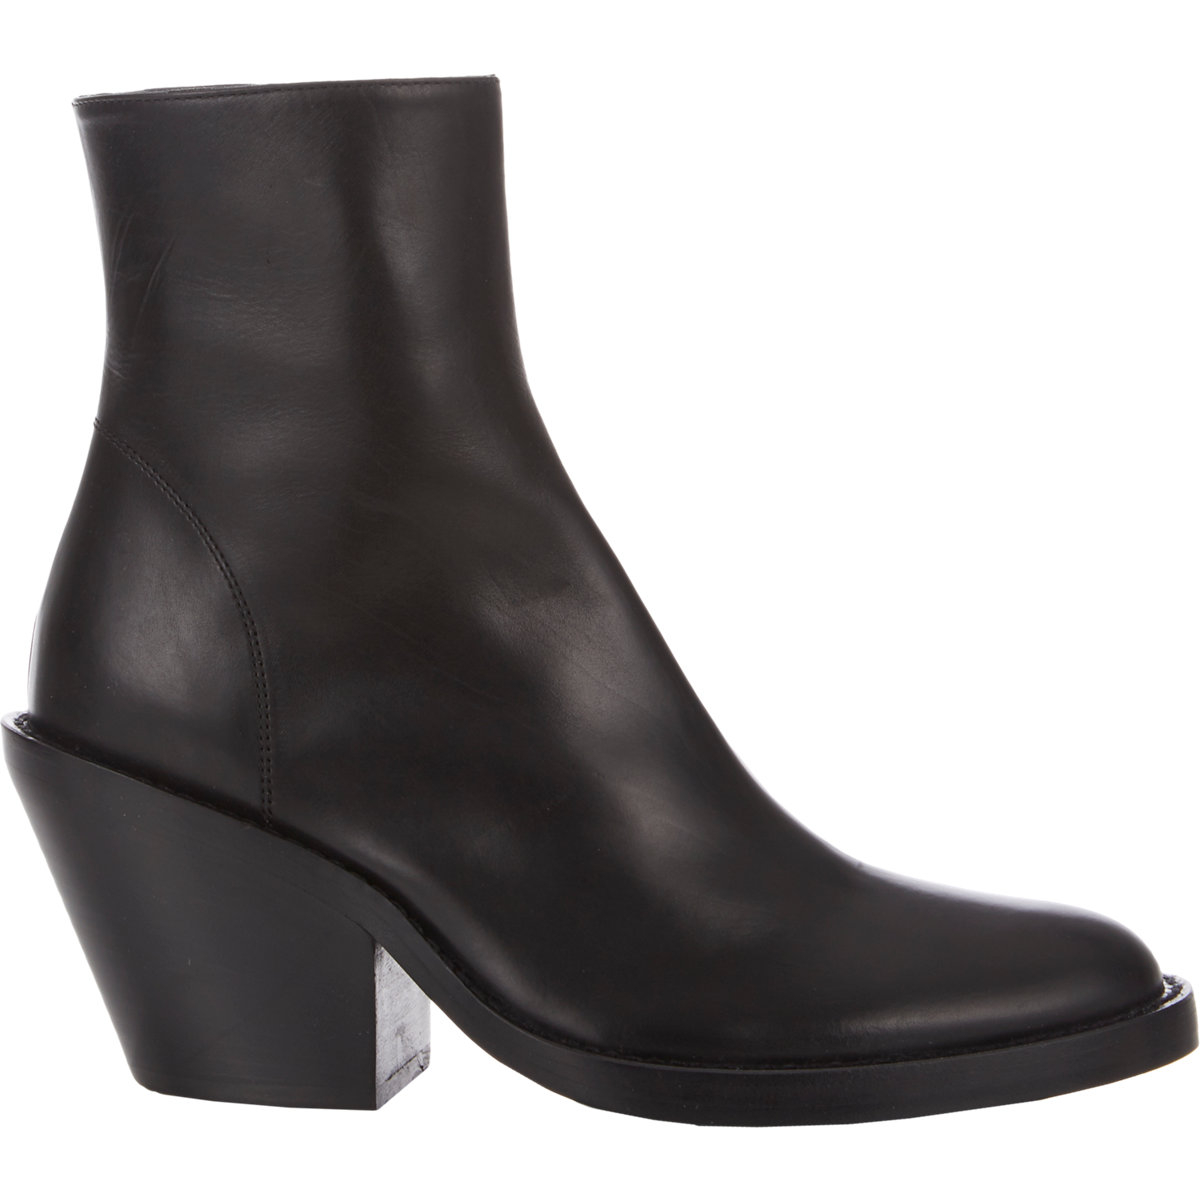 demeulemeester chunky heel ankle boots black size 5 in